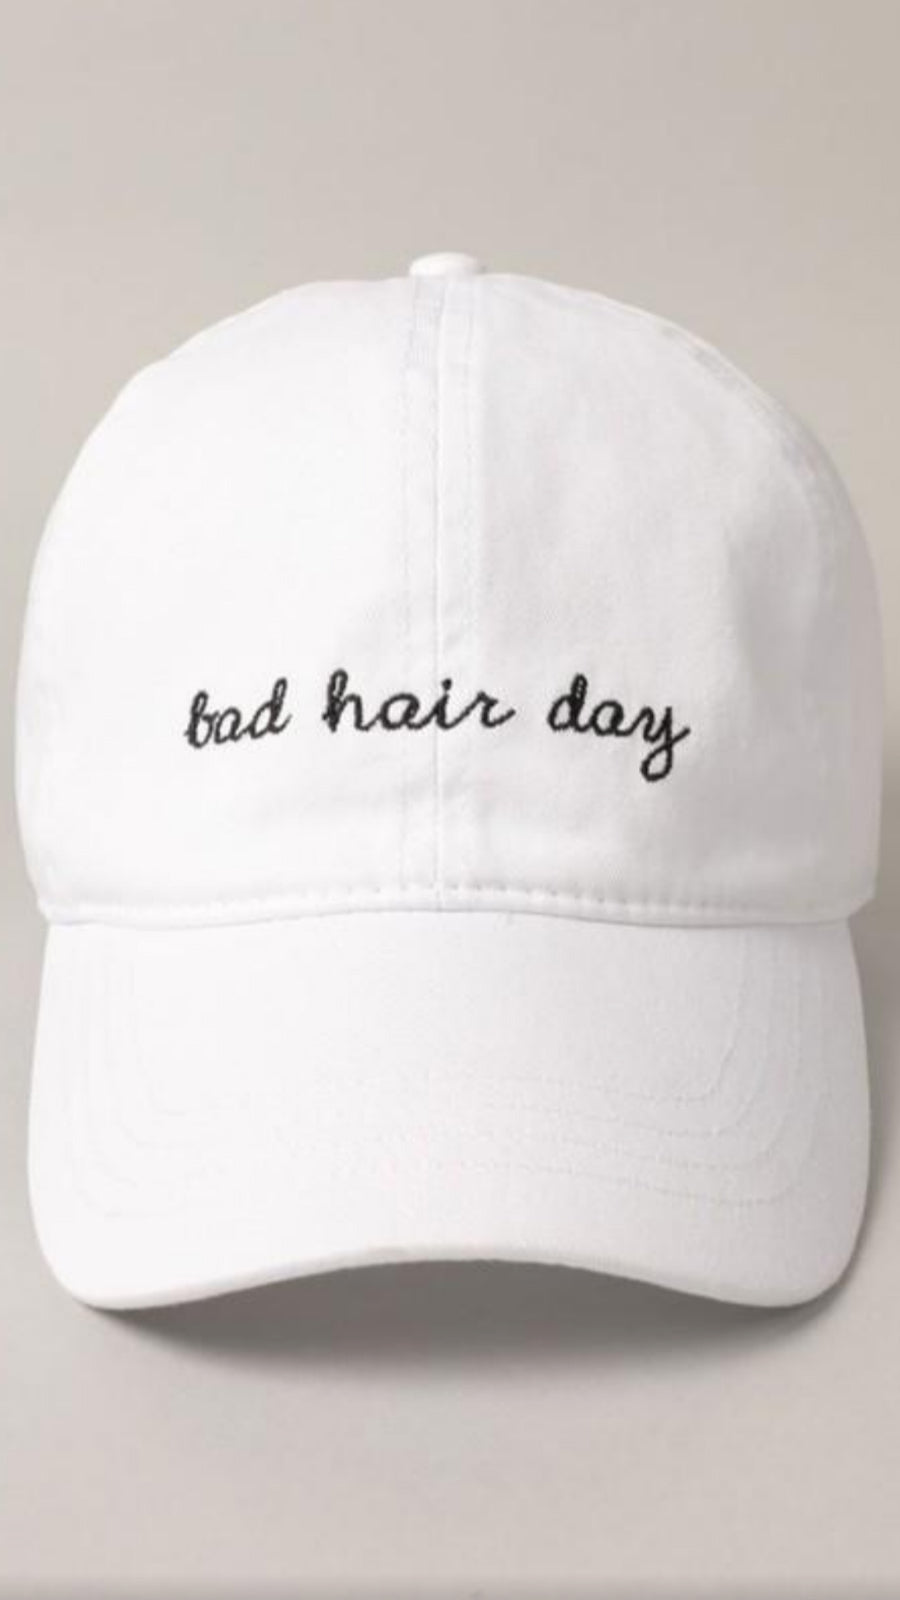 Bad Hair Day Baseball Cap - White